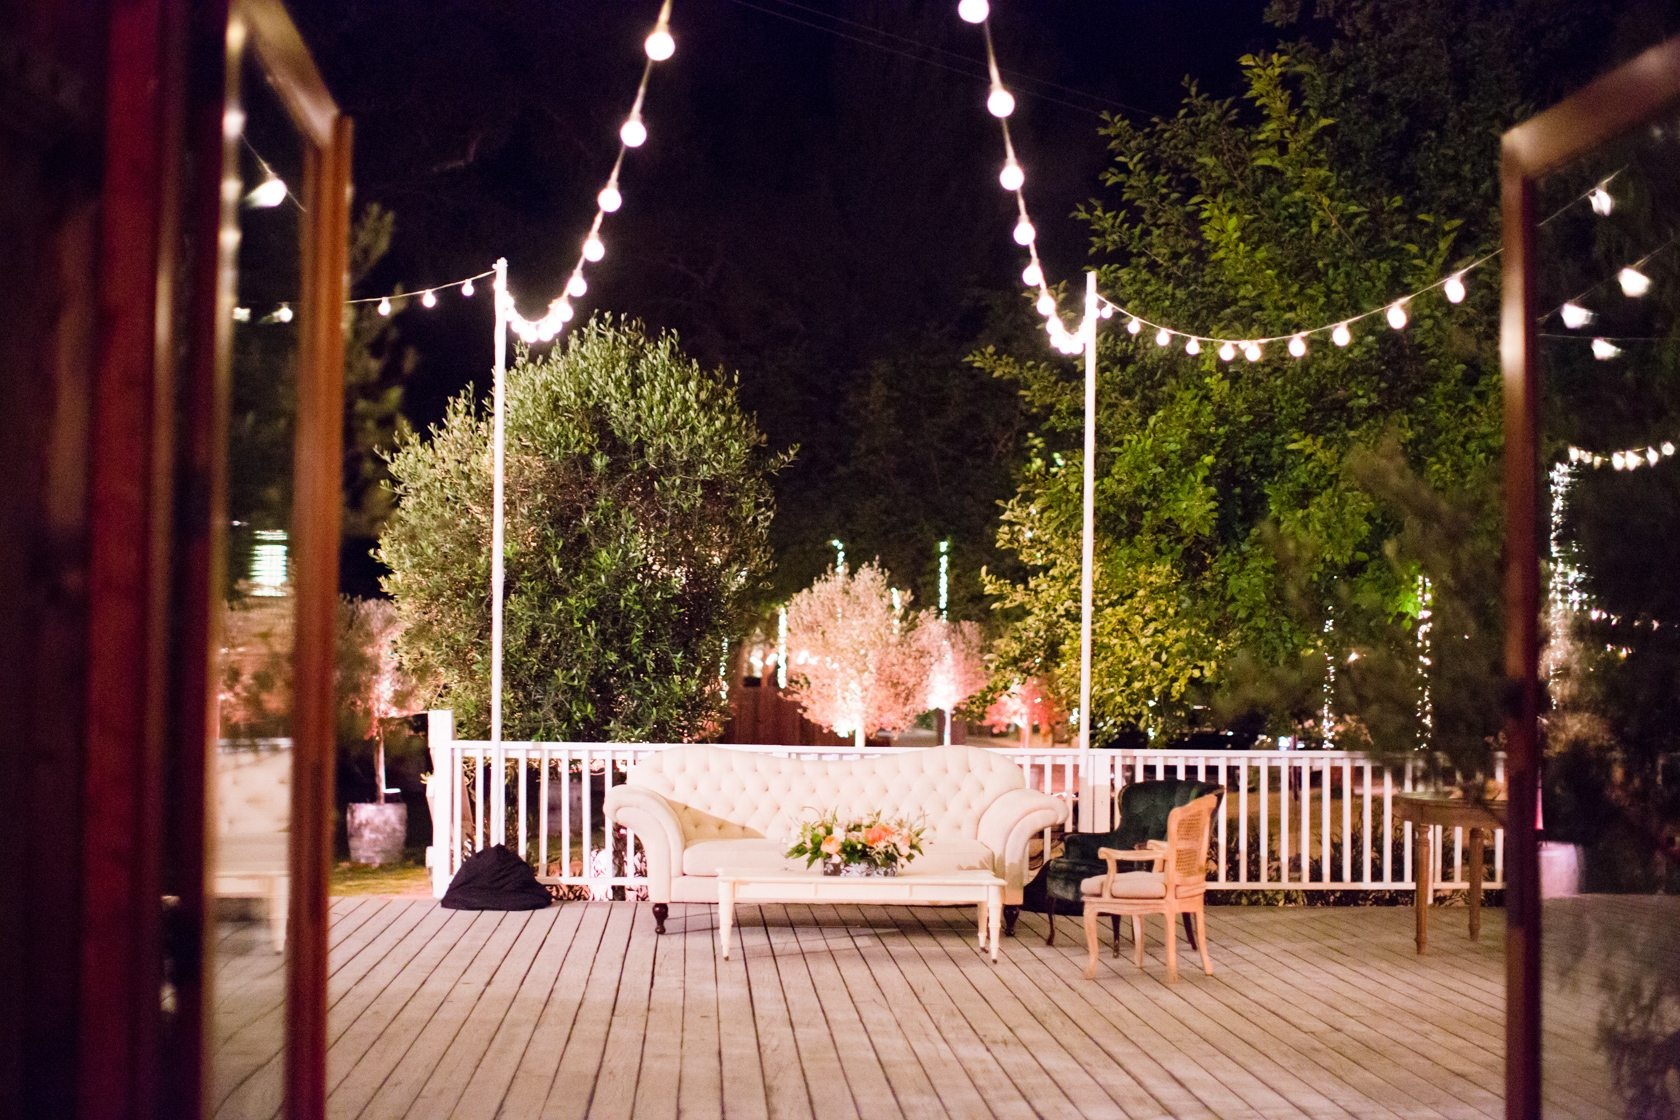 The_Printed_Palette_Wedding_at_Calamigos_Ranch_164.jpg